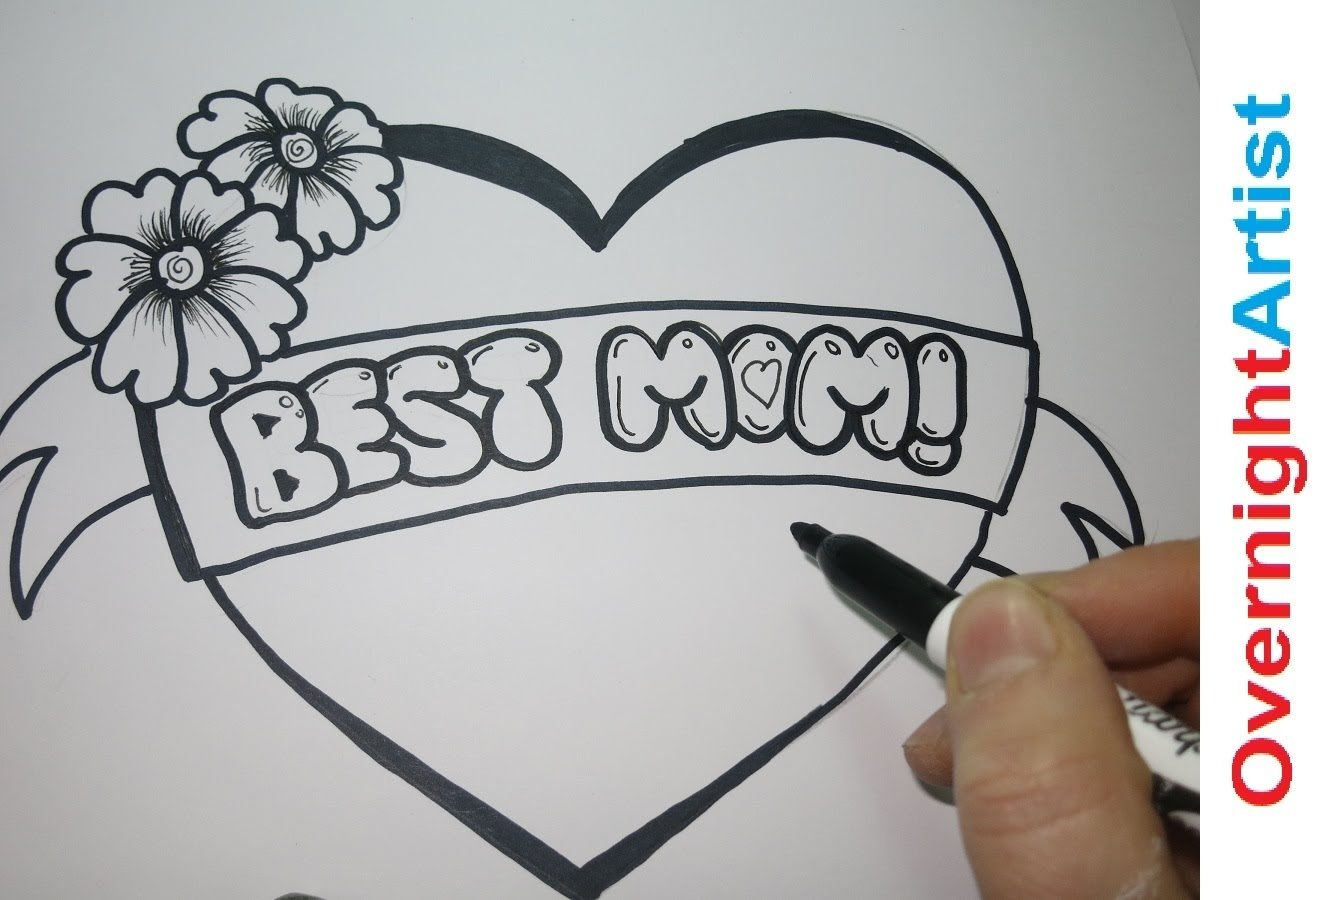 10 Awesome Ideas Of What To Draw mothers day drawing ideas draw best mom how to draw best mom 1 2020